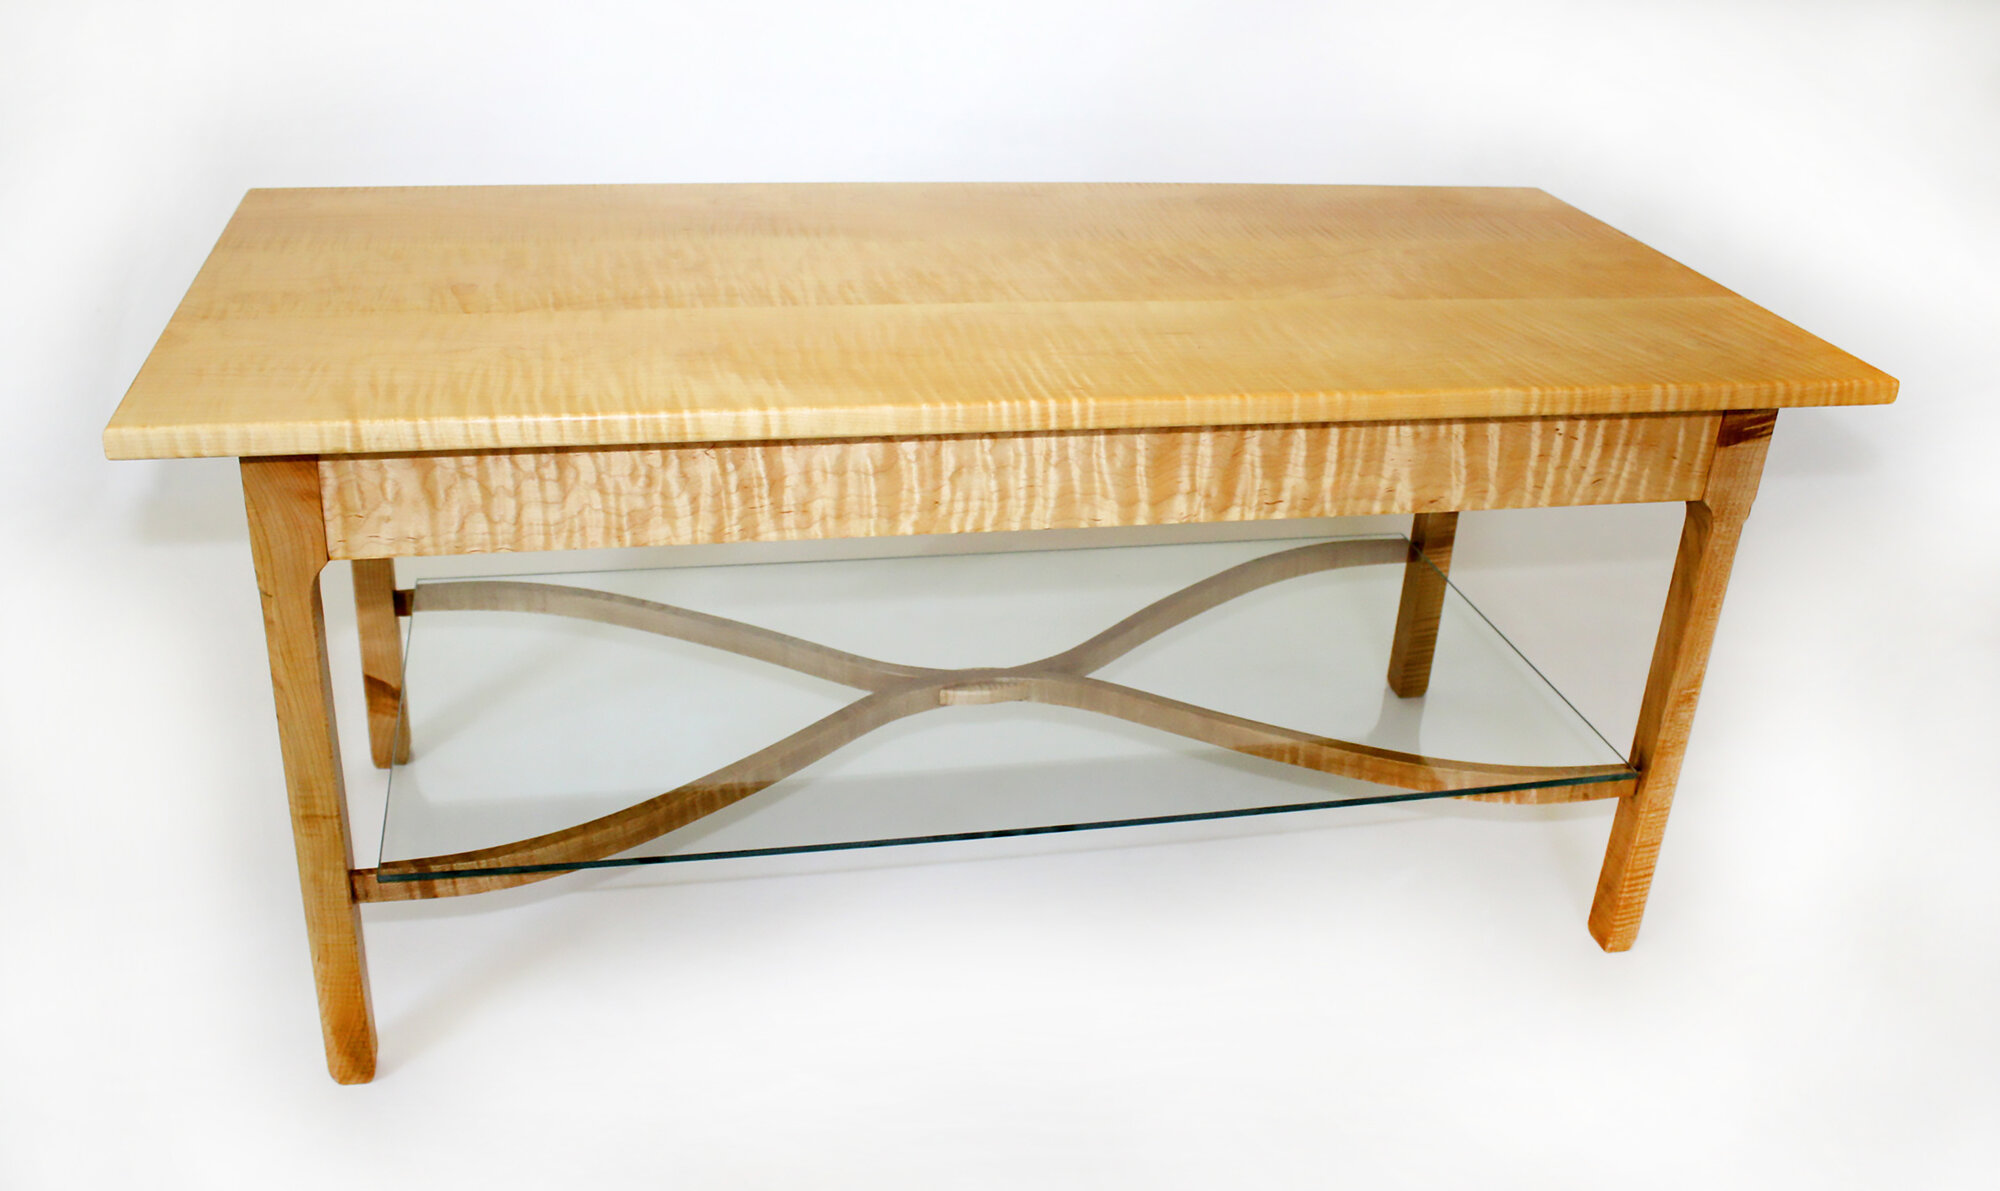 Coyle's Coffee Table